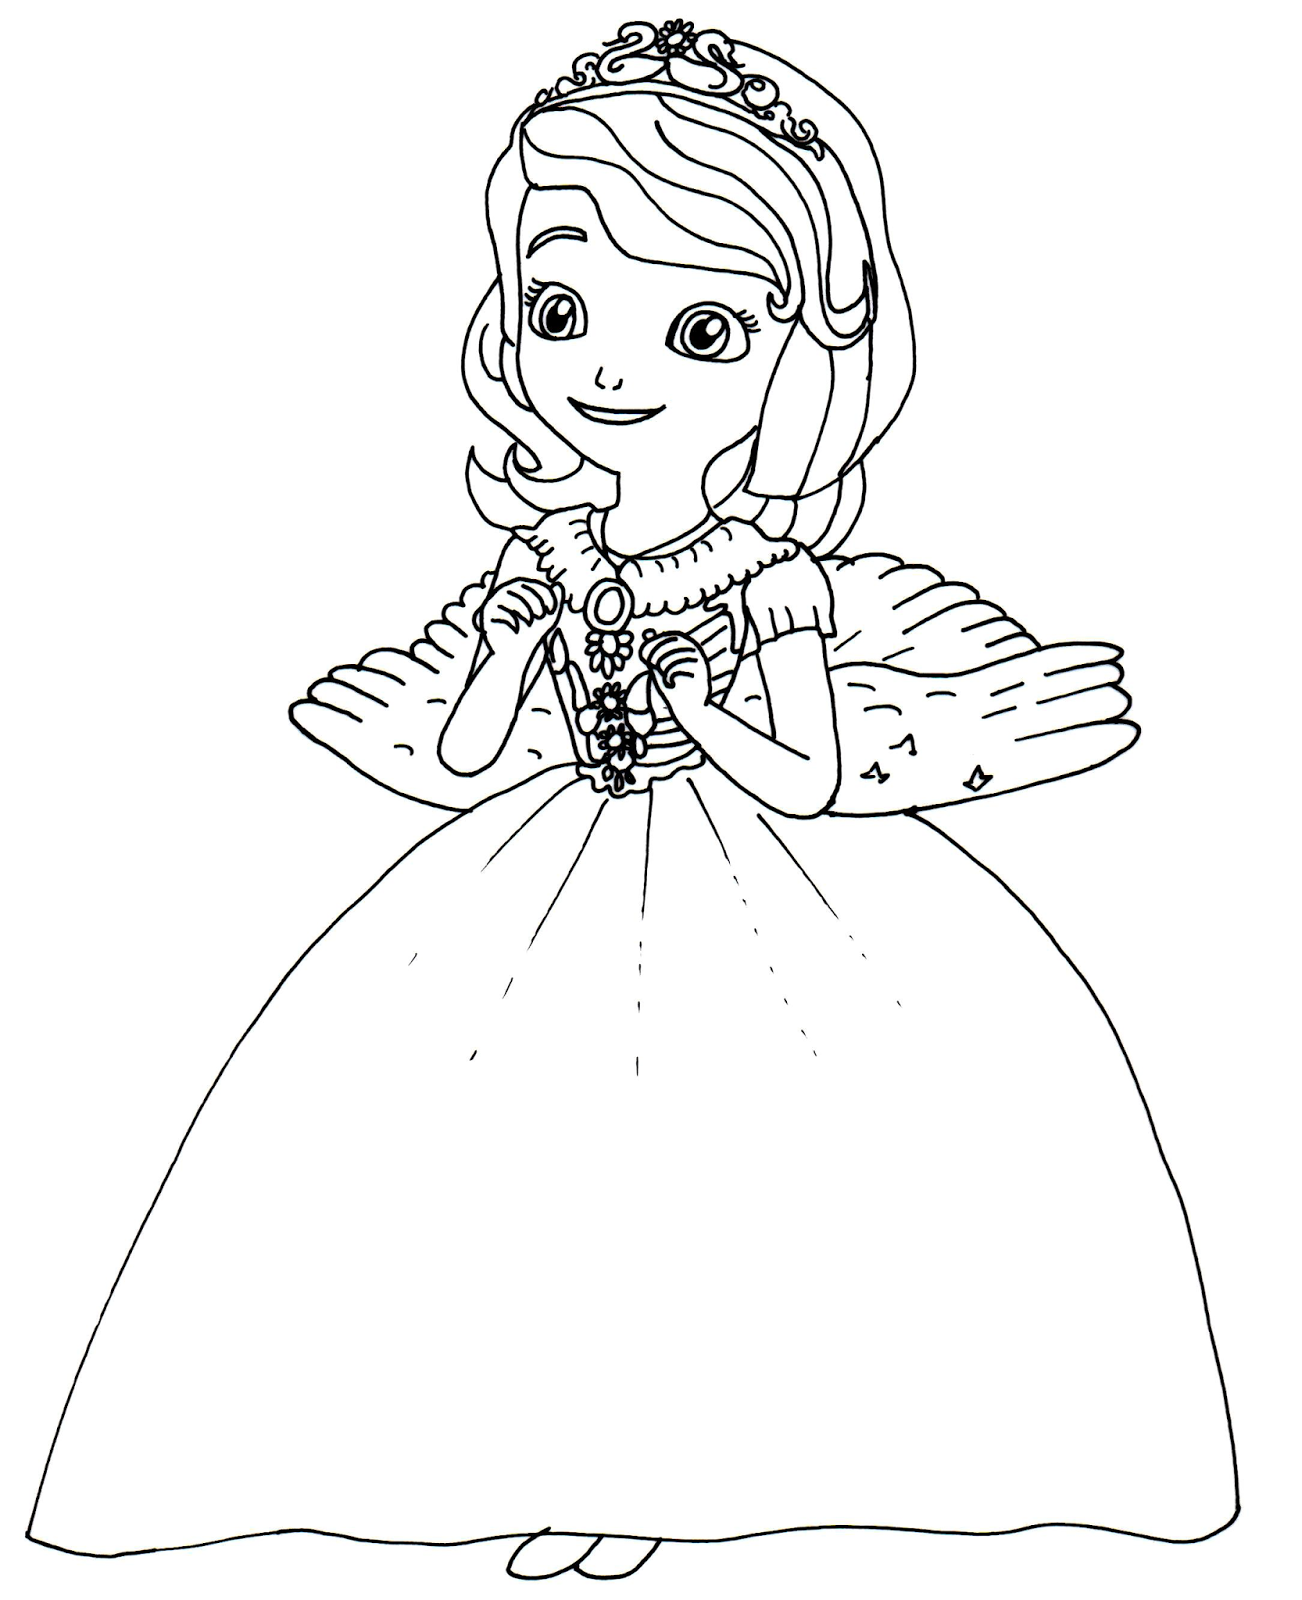 Sofia the first coloring pages march 2014 for Sofia the princess coloring pages